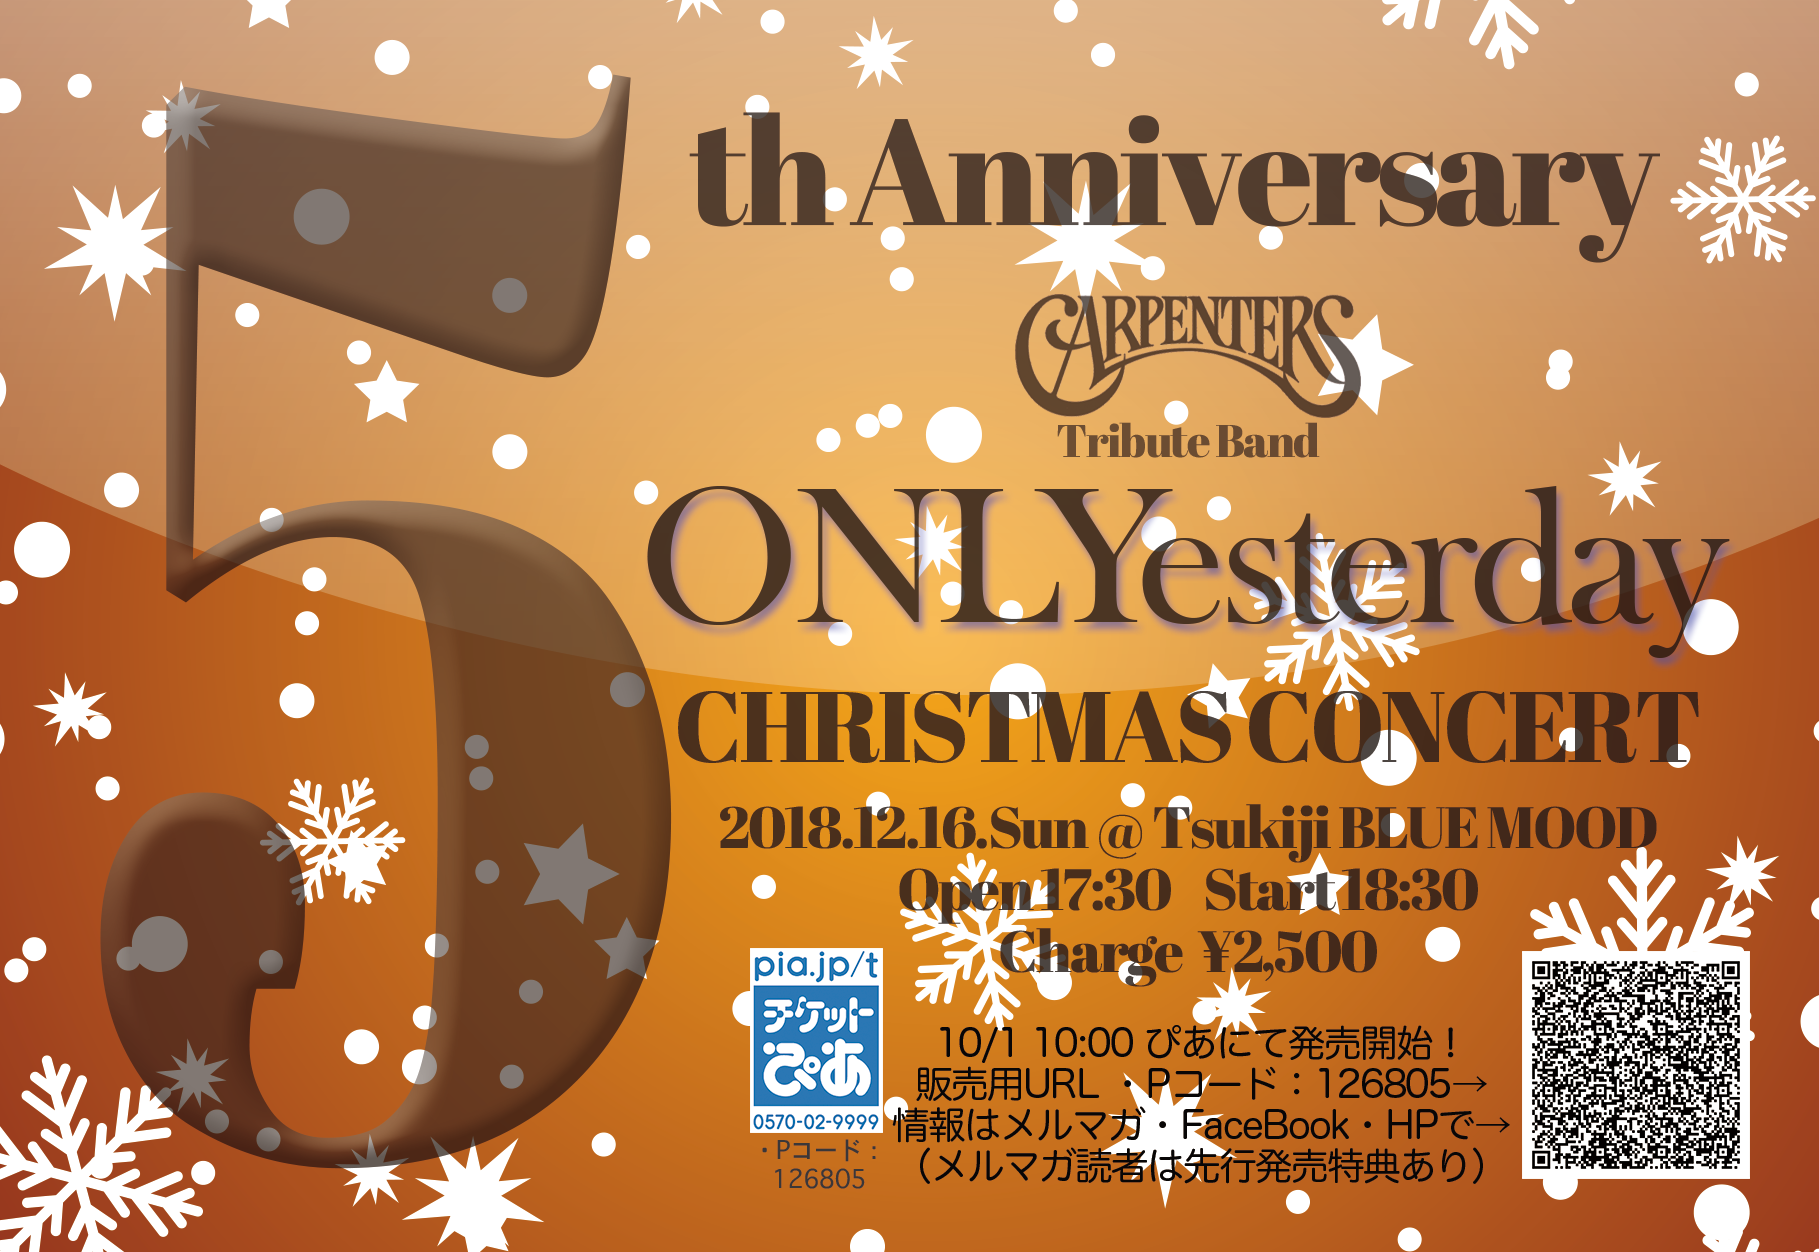 ONLYesterday CHRISTMAS CONCERT 5th ANNIVERSARY